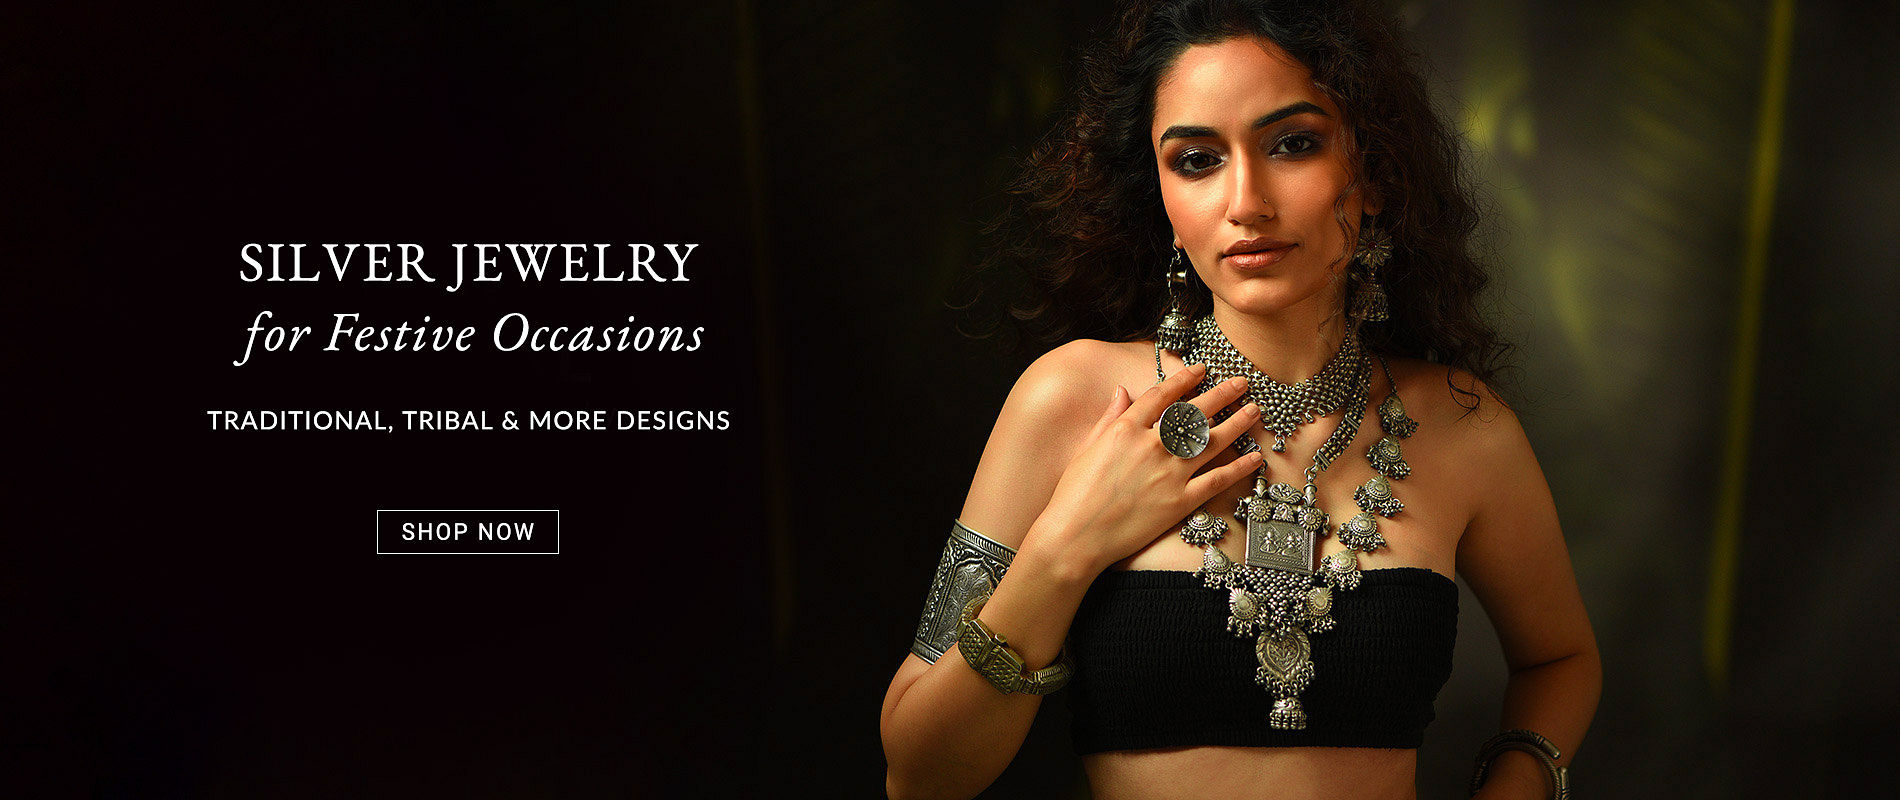 8_19102021_Silver_Jewelry_For_Festive_Occasions